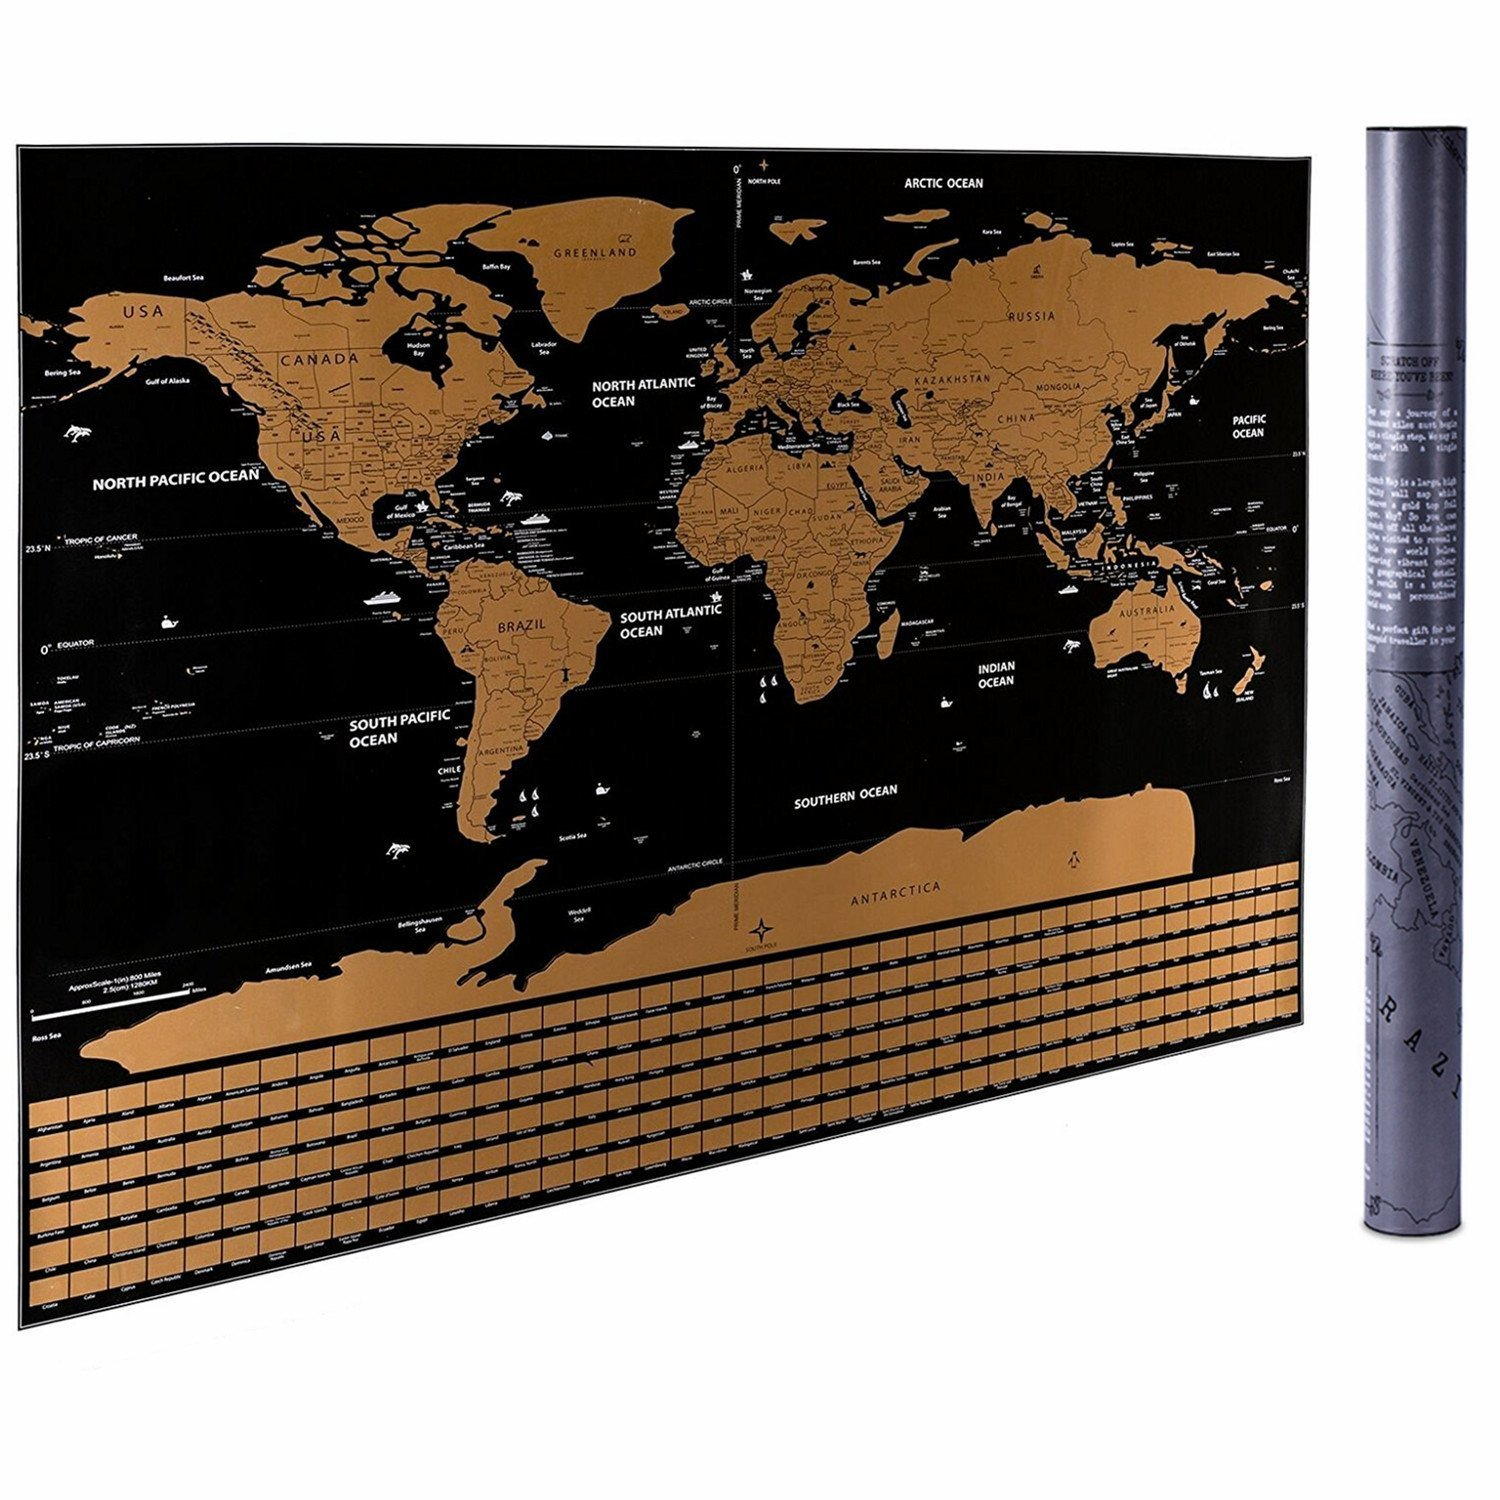 Scratch off world map cartouche and coin shop gumiabroncs Gallery